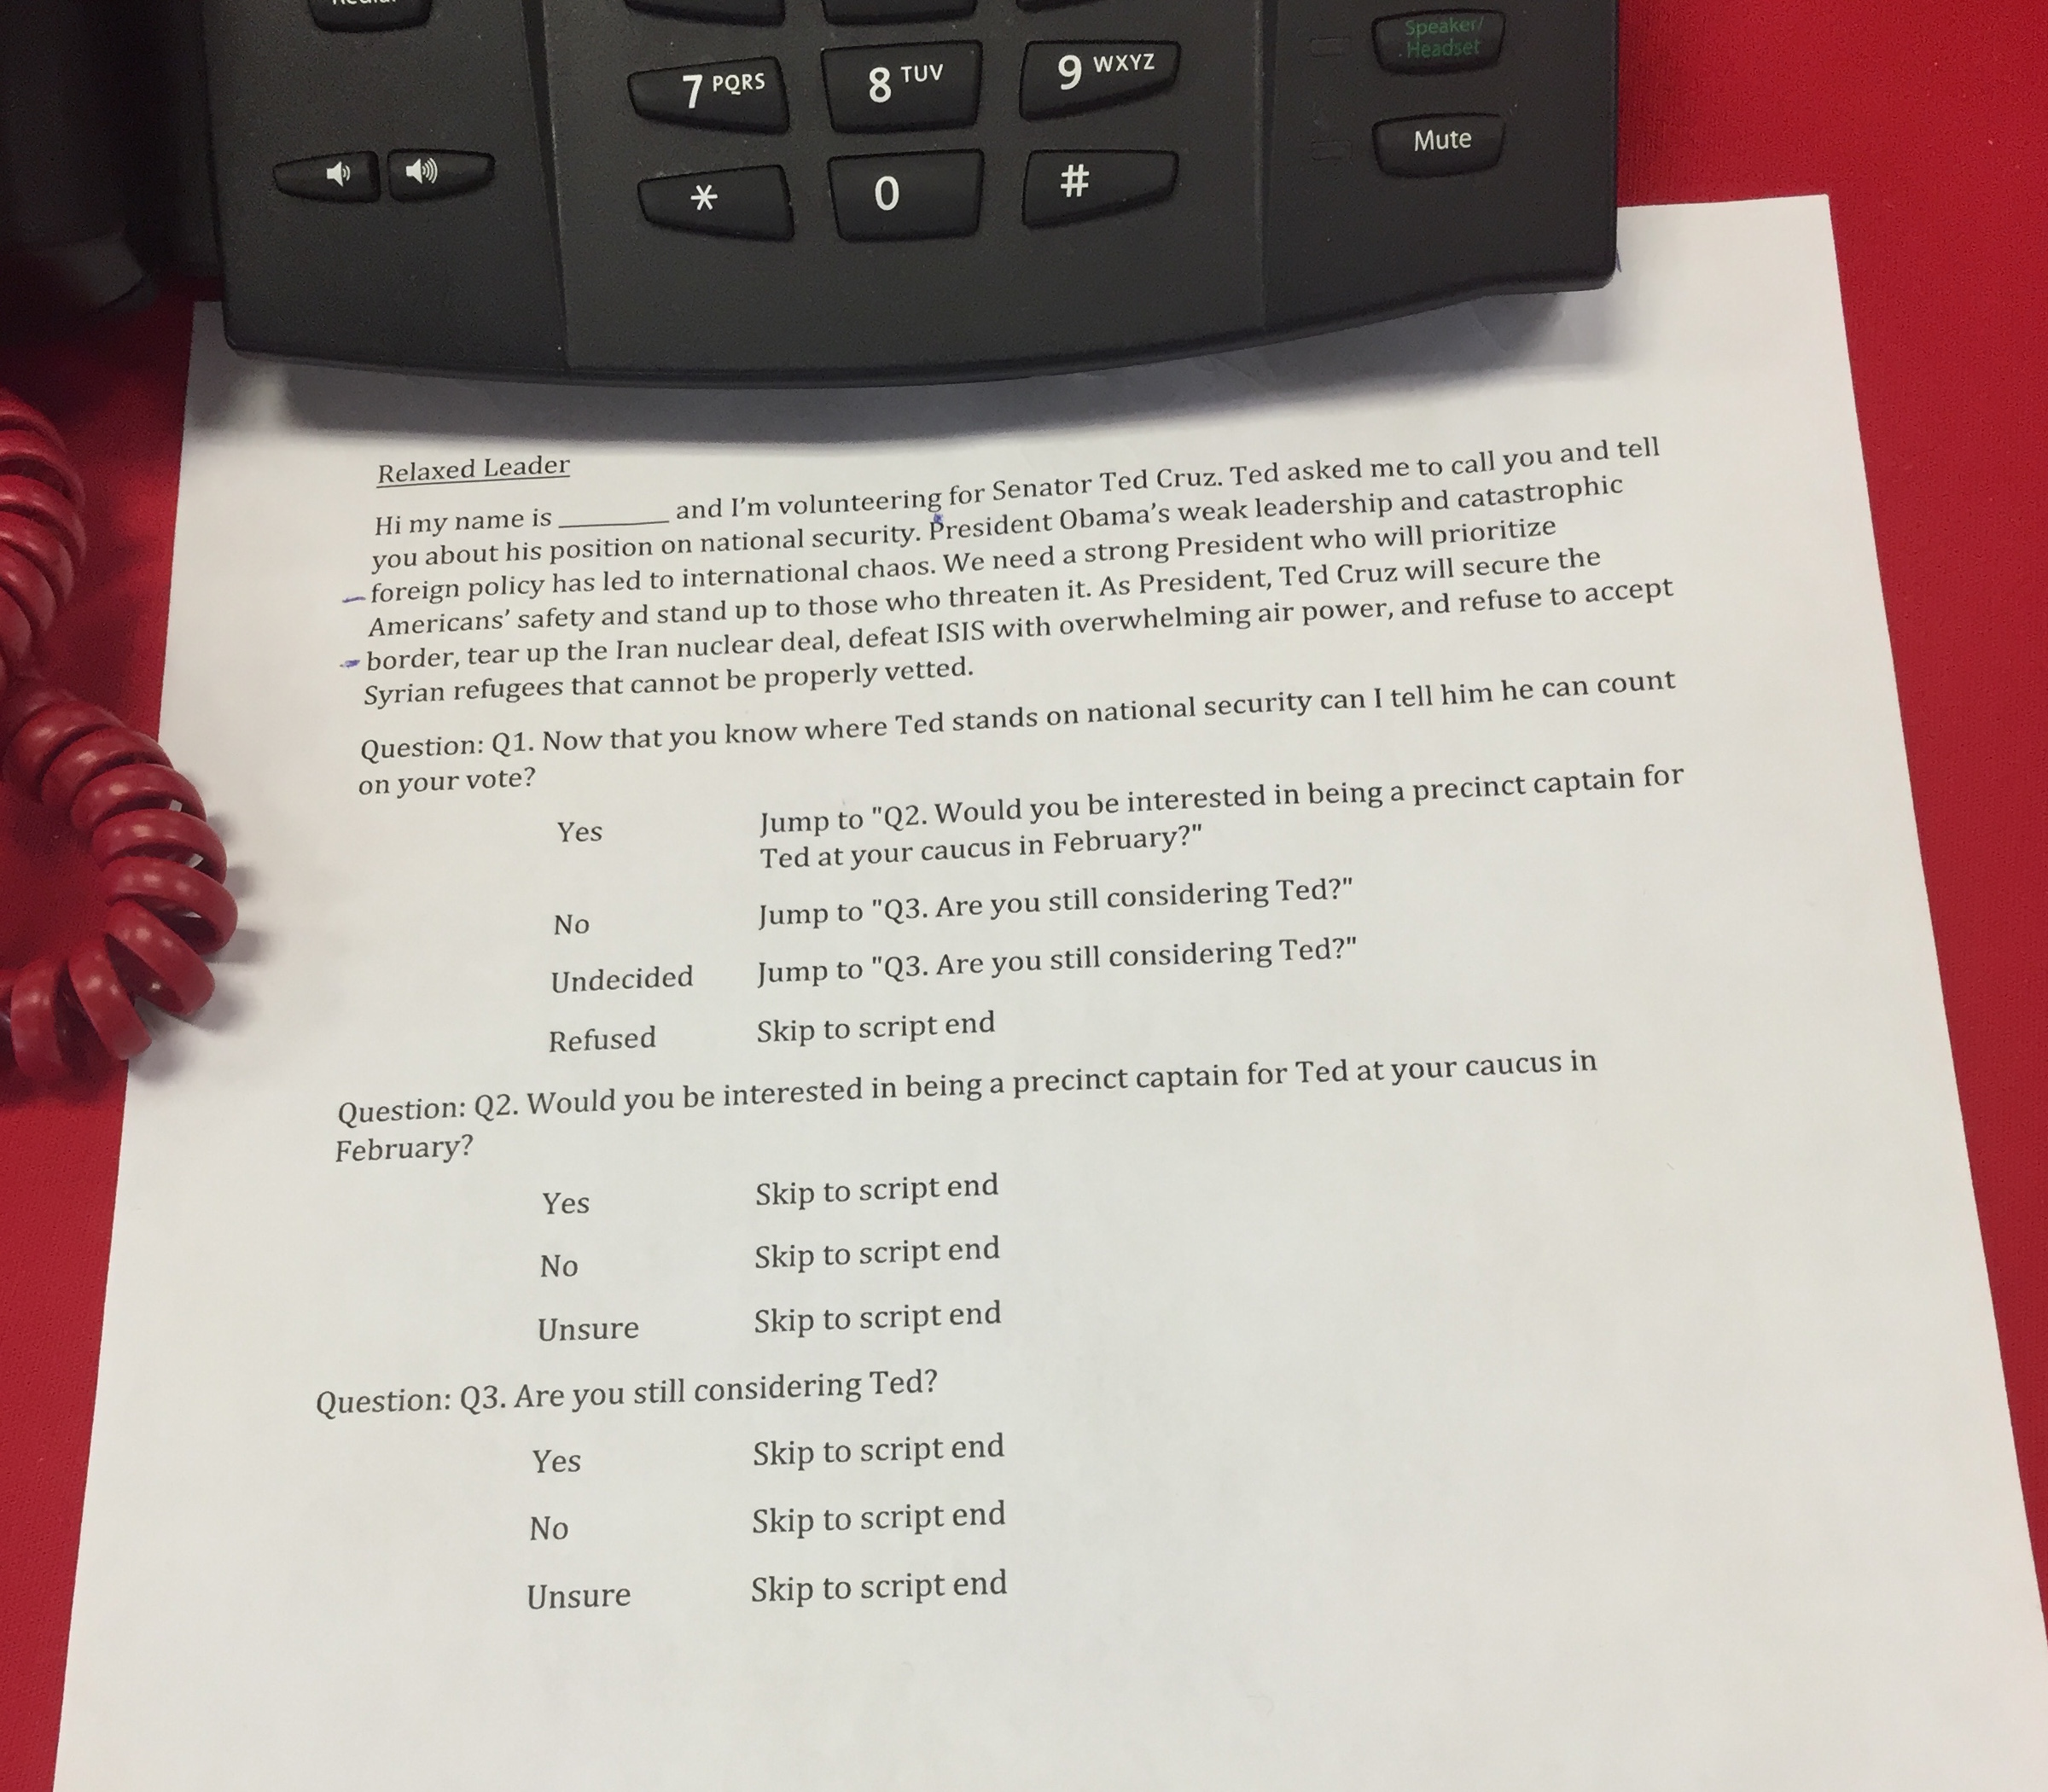 A call script used by the Ted Cruz campaign in Iowa. The phones are equipped with an interface that lets volunteers log voter responses directly into a database.